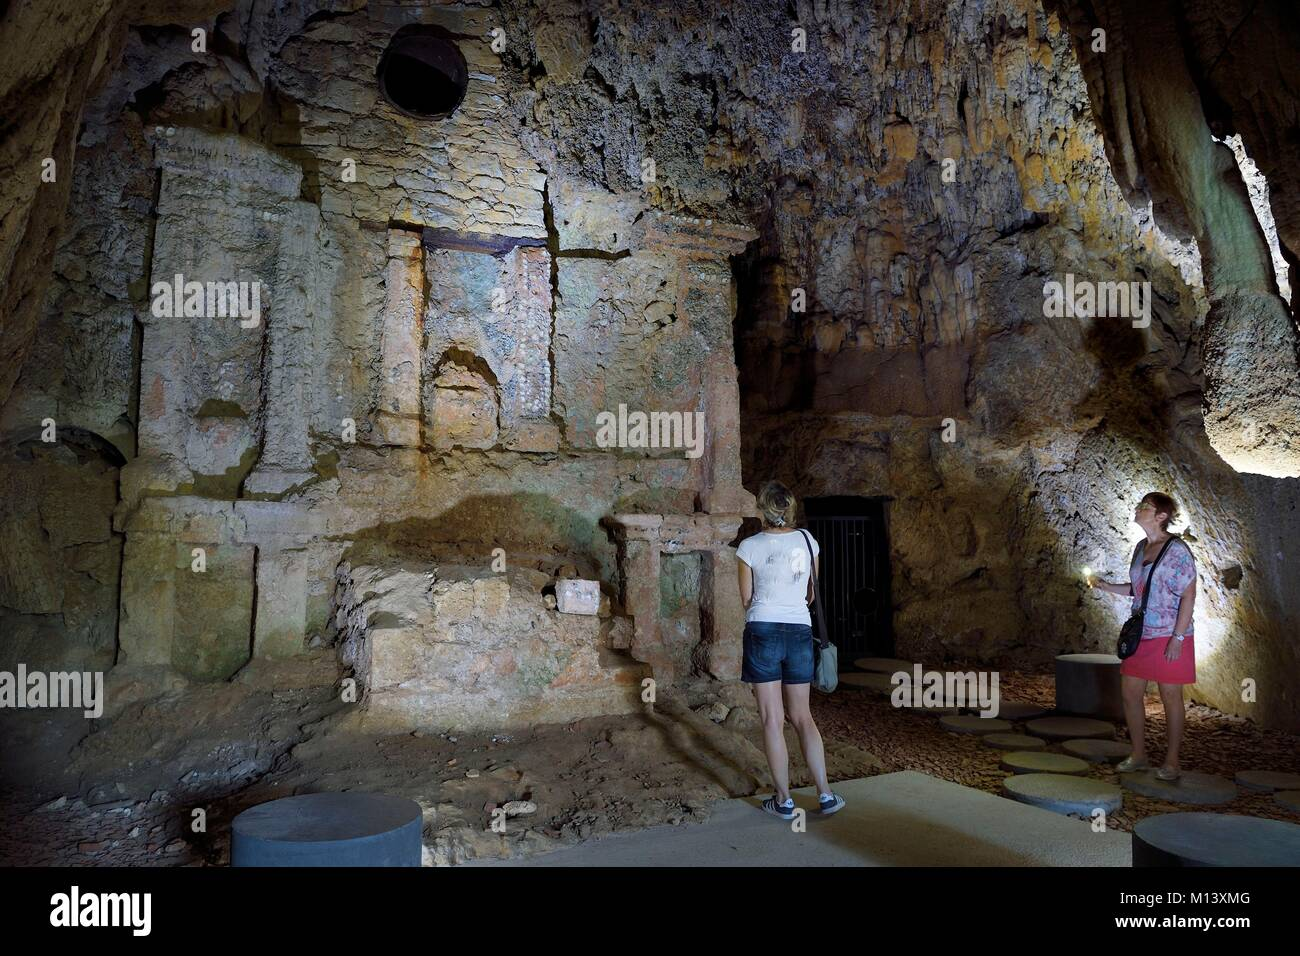 France, Var, Provence Verte, Barjols, troglodyte Convent of the Carmelites Dechaux, the chapel with shells Stock Photo